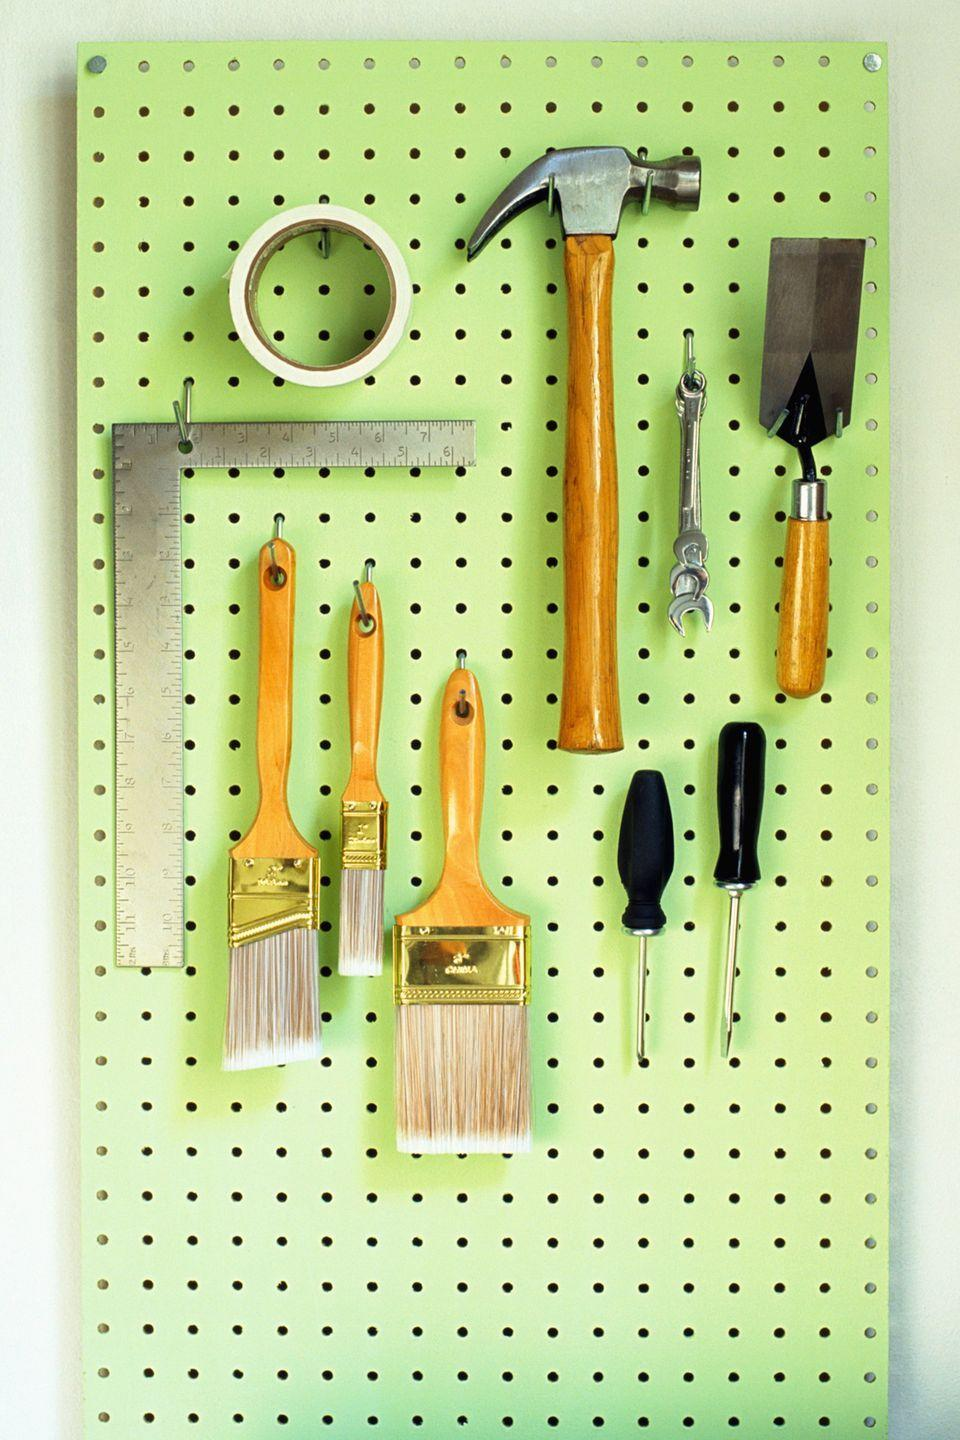 """<p>Hang a spray-painted Peg-Board for tools, coats, baseball caps; use <a href=""""https://www.womansday.com/home/organizing-cleaning/g1957/command-hook-uses/"""" rel=""""nofollow noopener"""" target=""""_blank"""" data-ylk=""""slk:wall hooks"""" class=""""link rapid-noclick-resp"""">wall hooks</a> for blow dryers.</p><p><strong><a class=""""link rapid-noclick-resp"""" href=""""https://www.amazon.com/Rust-Oleum-249123-Painters-Purpose-12-Ounce/dp/B002BWOS6M/r?tag=syn-yahoo-20&ascsubtag=%5Bartid%7C10070.g.3310%5Bsrc%7Cyahoo-us"""" rel=""""nofollow noopener"""" target=""""_blank"""" data-ylk=""""slk:SHOP SPRAY PAINT"""">SHOP SPRAY PAINT</a></strong></p>"""